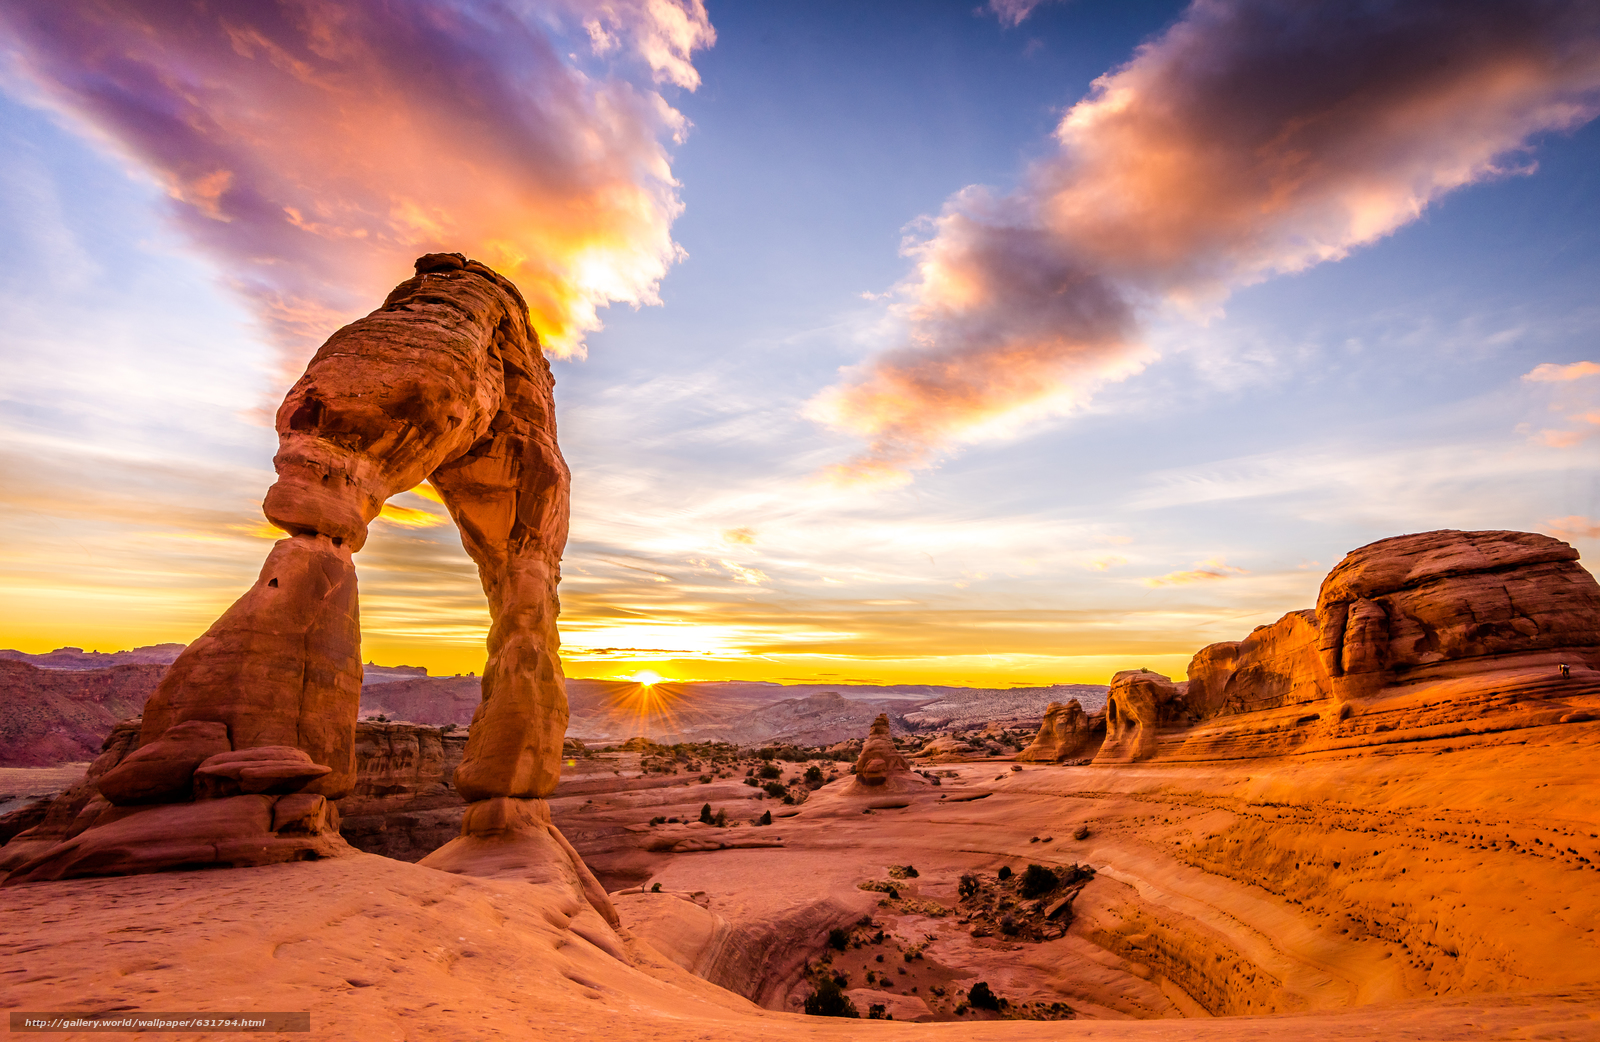 Download Wallpaper Delicate Arch Sunset Mountains Rocks Free Desktop In The Resolution 6643x4326 Picture No631794